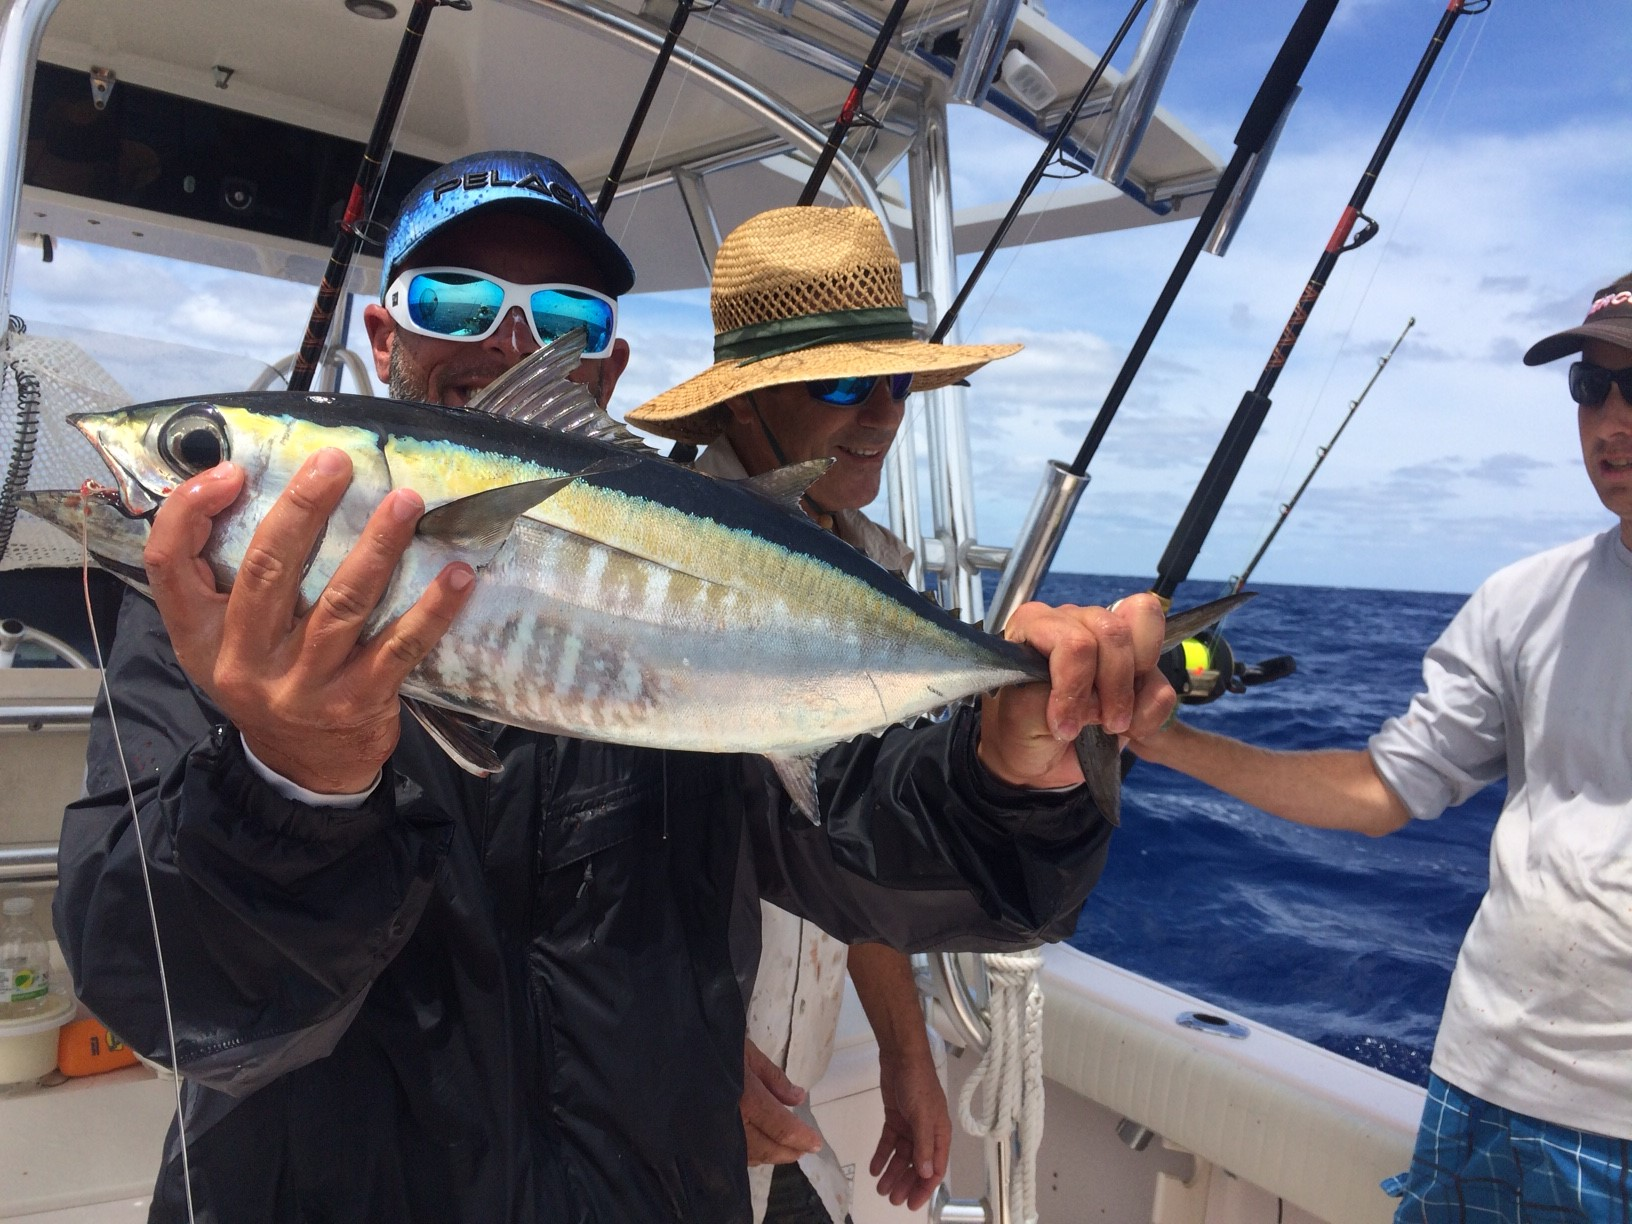 Blackfin tuna are biting at the humps off Marathon. Call Capt. Doug for your next Florida Keys fishing charter.